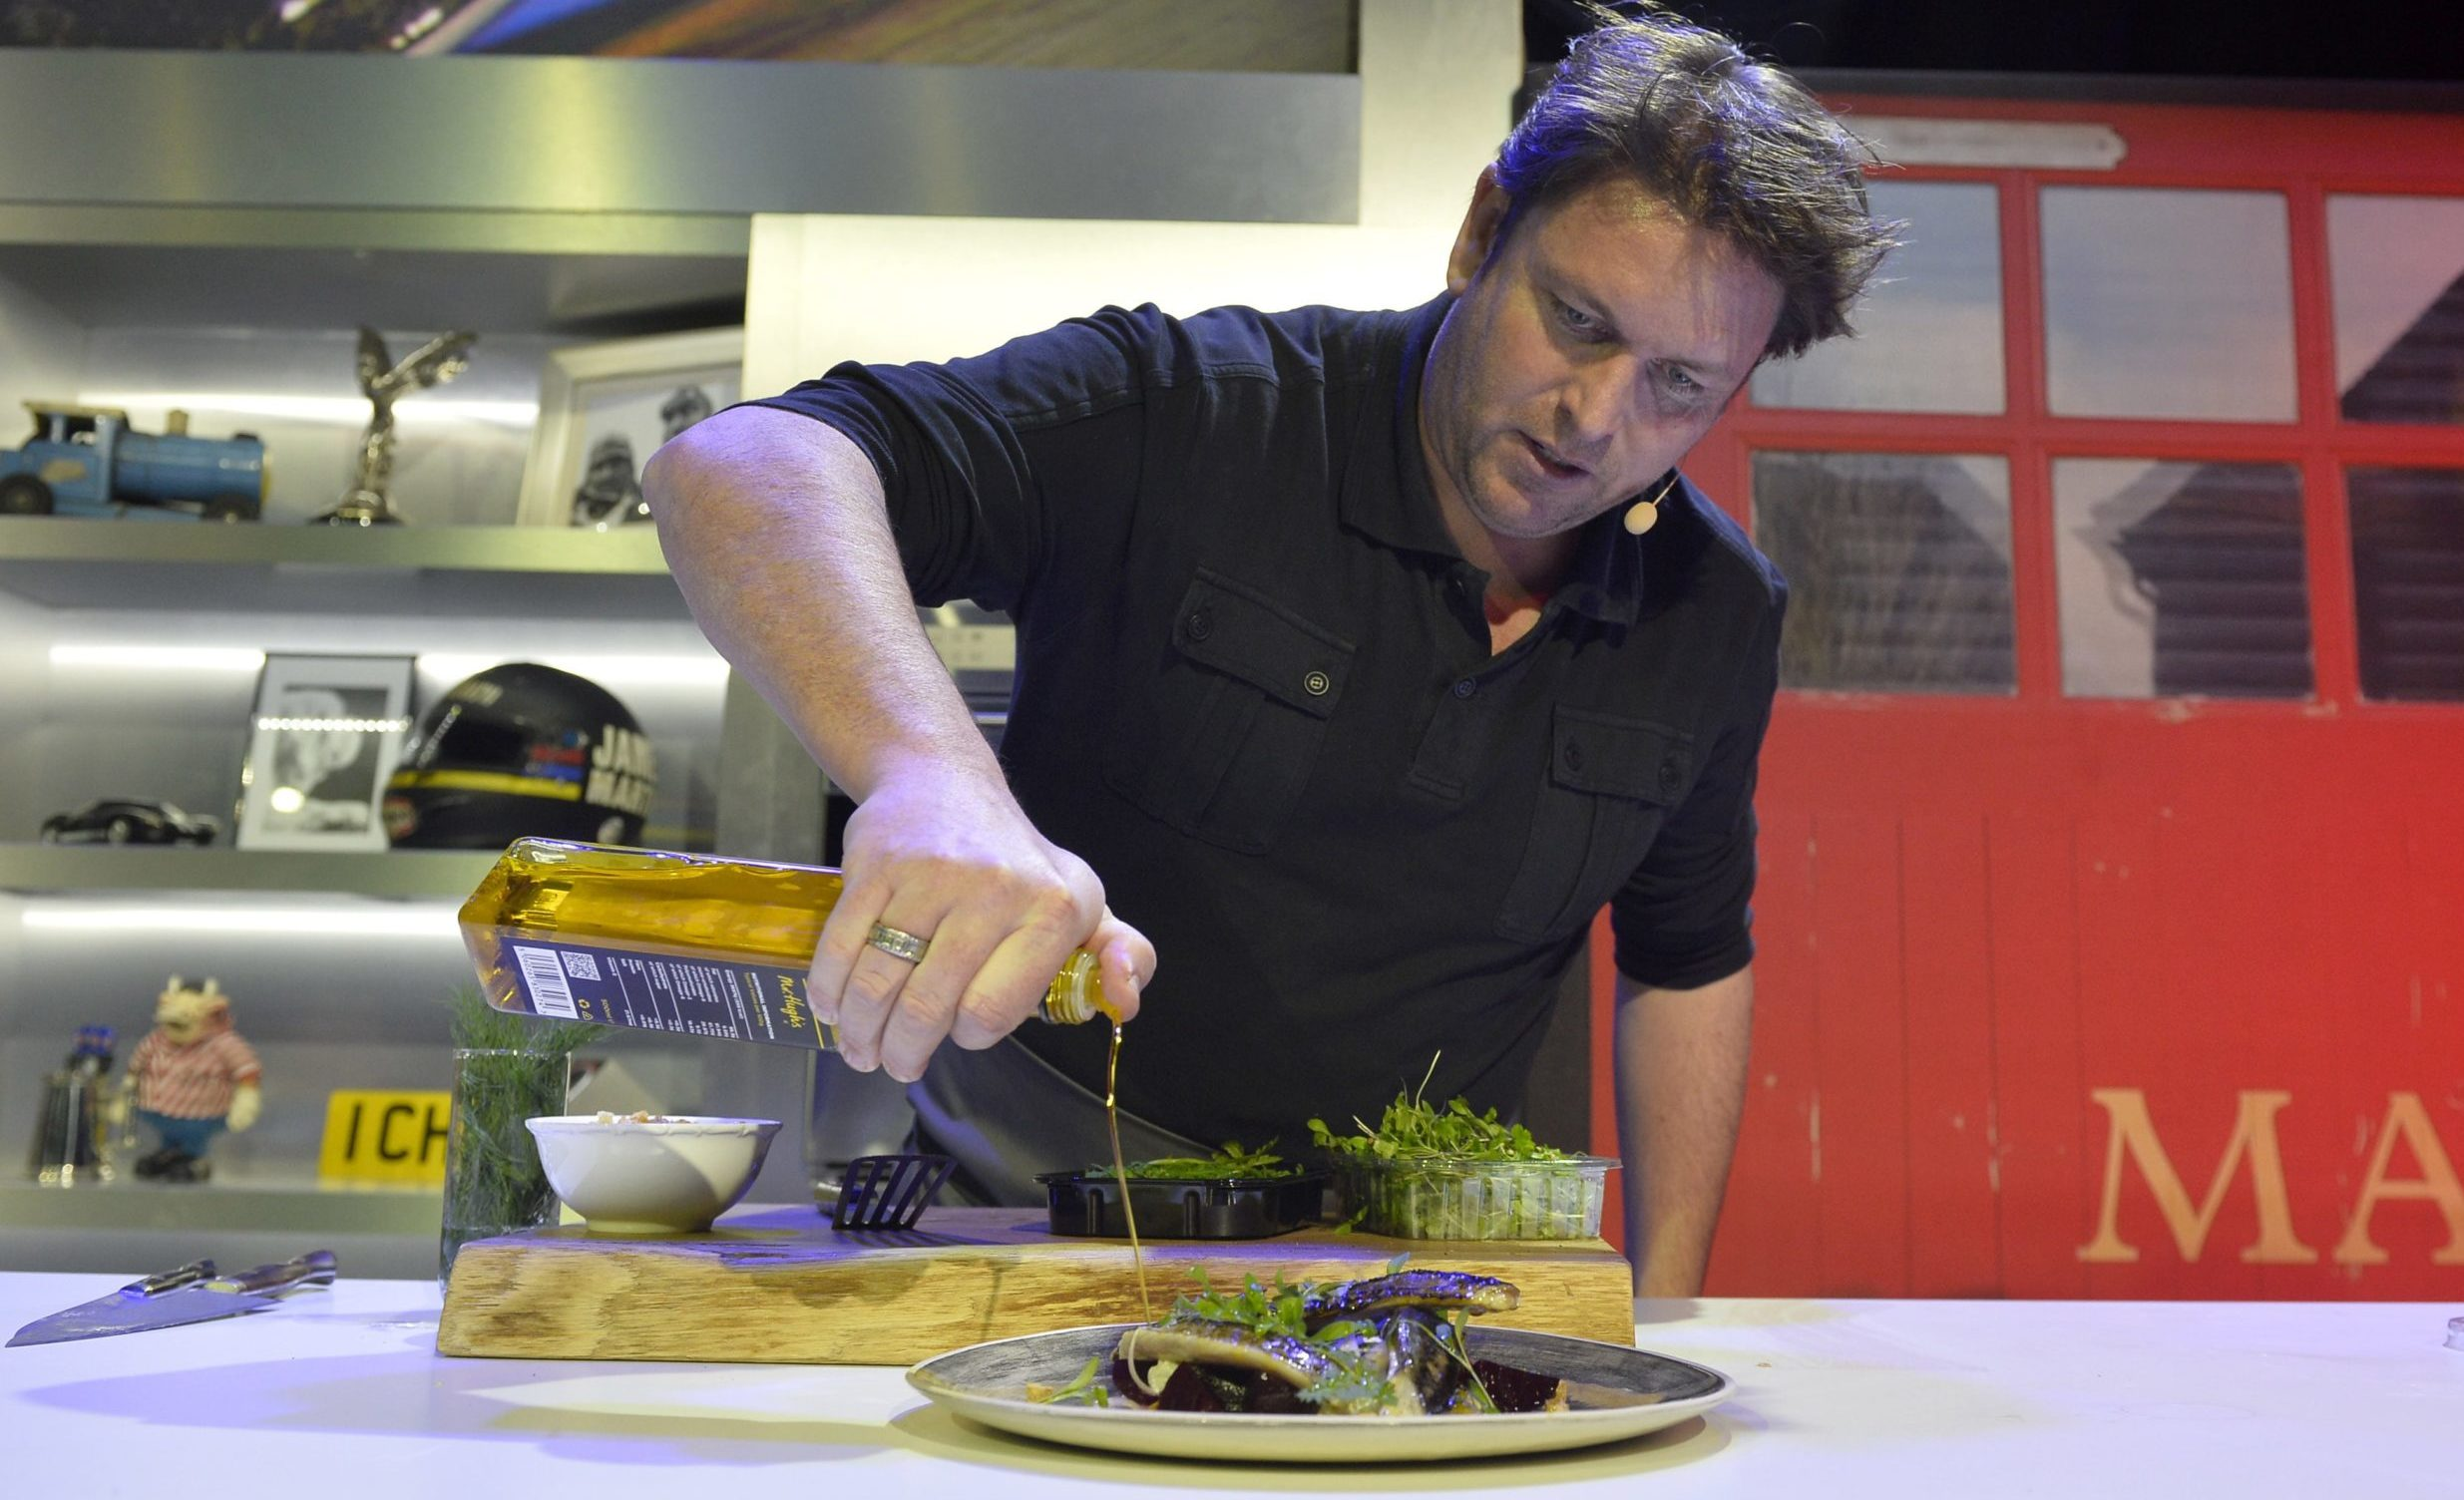 Who are the Saturday Kitchen chefs? James Martin cooking